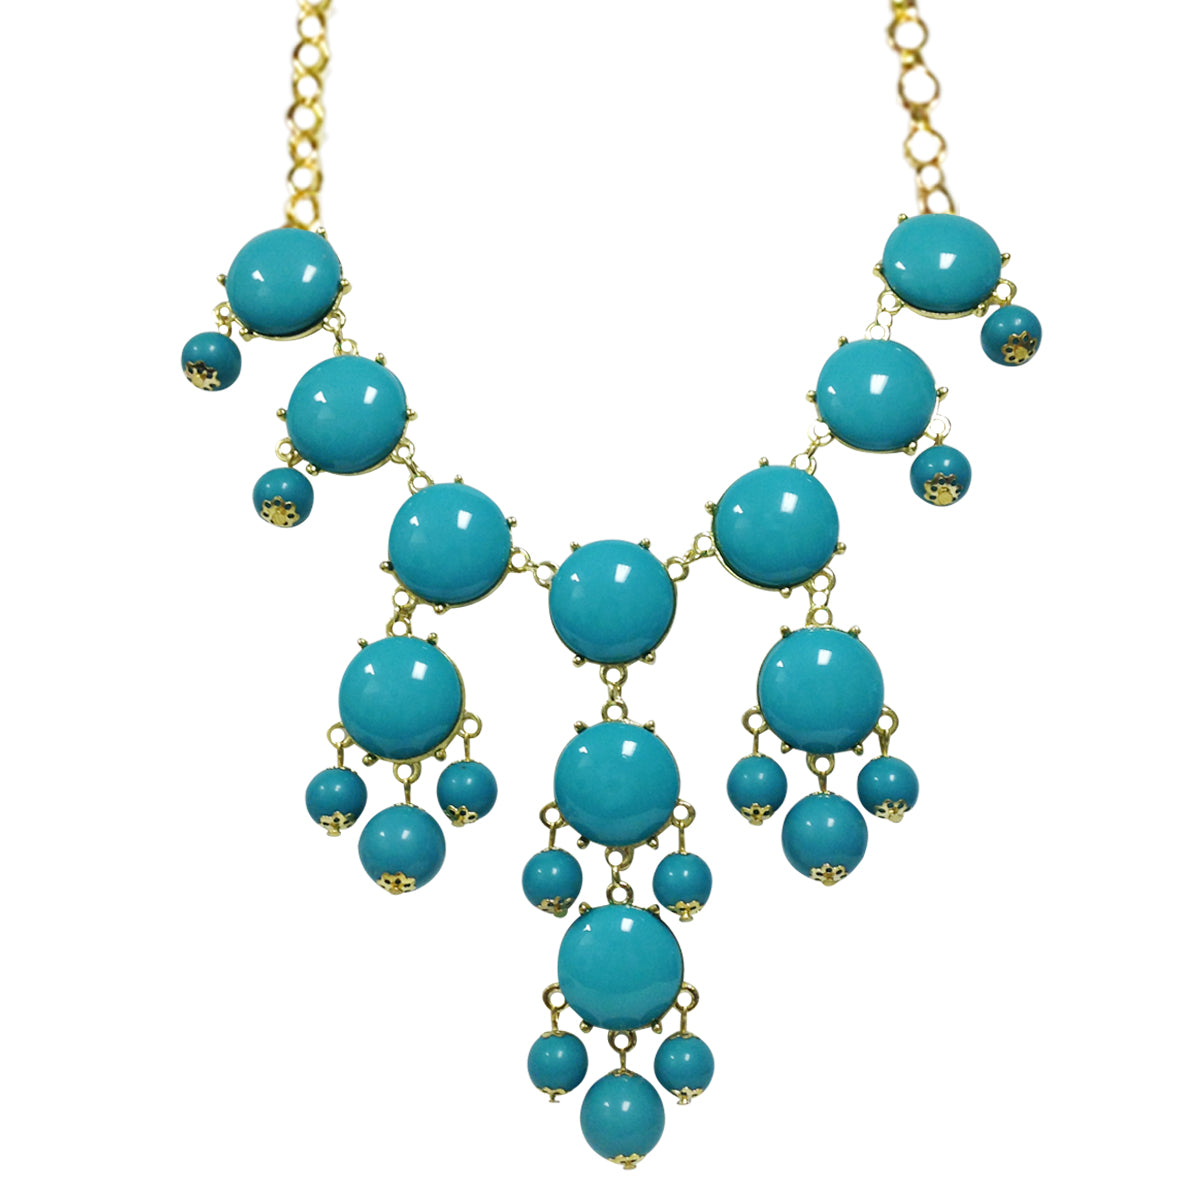 Wrapables Medium Bubble Bib Statement Necklace